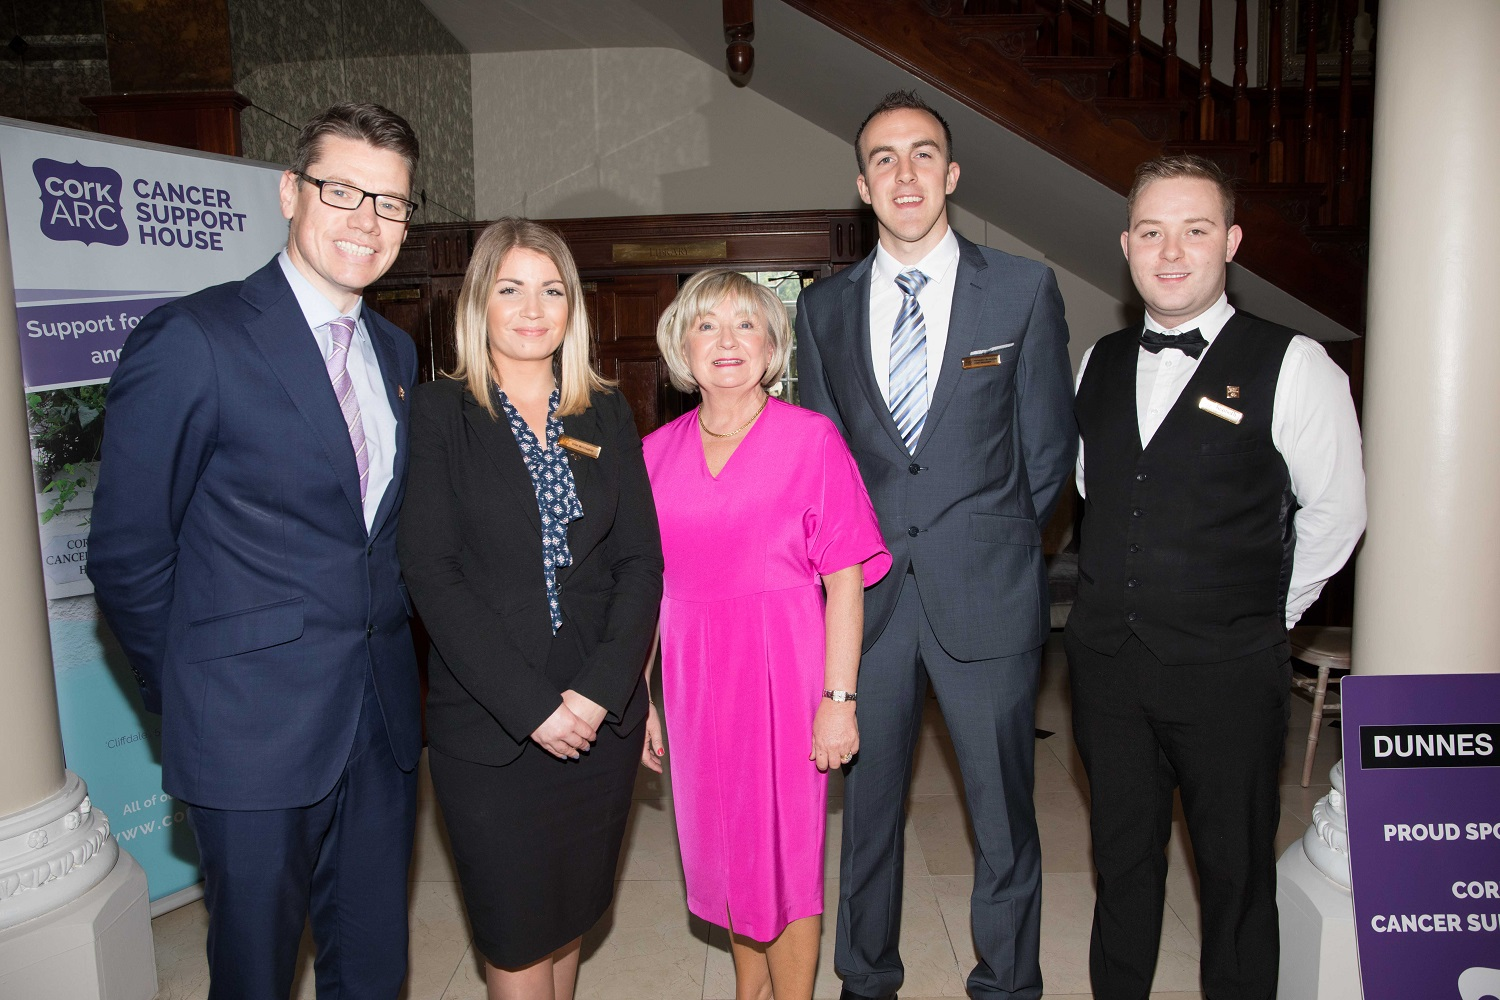 TJ Mulcahy, Erin McCluskey, Hayfield Manor, Letitia Clynch, Dunnes Stores, Evander Brennan and Kenneth Ivers, Hayfield Manor